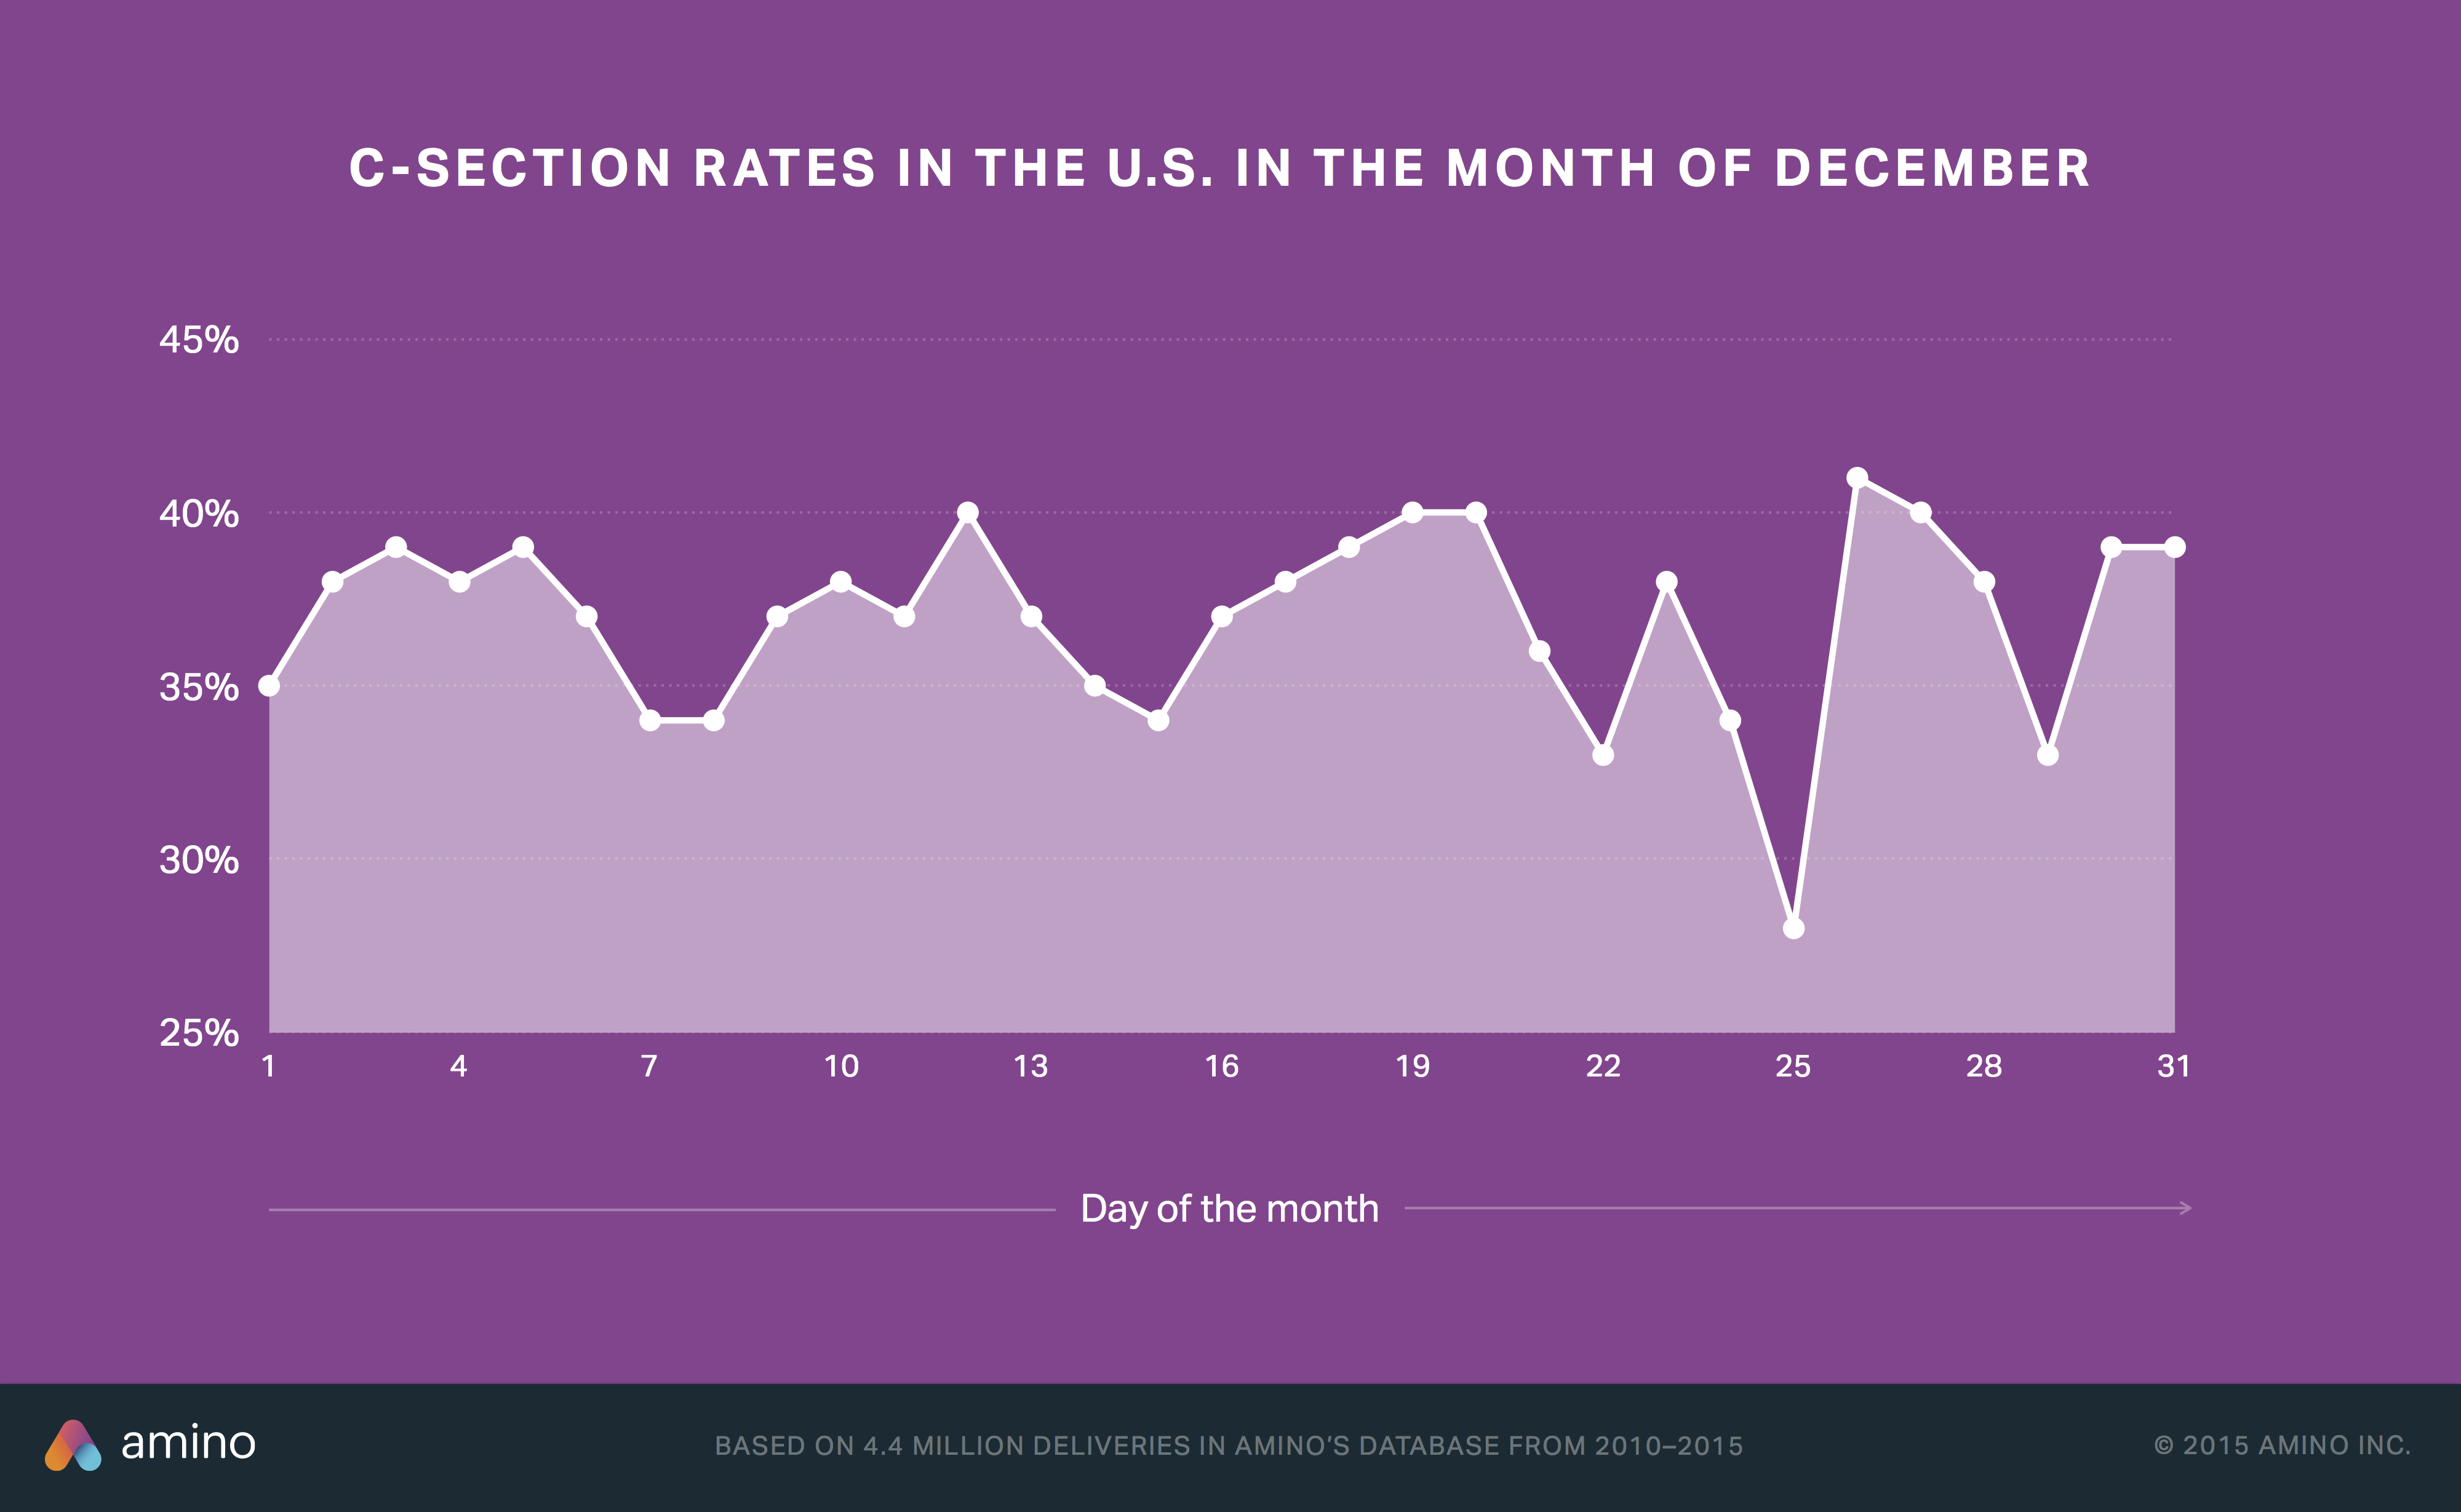 C-section rates by day in December